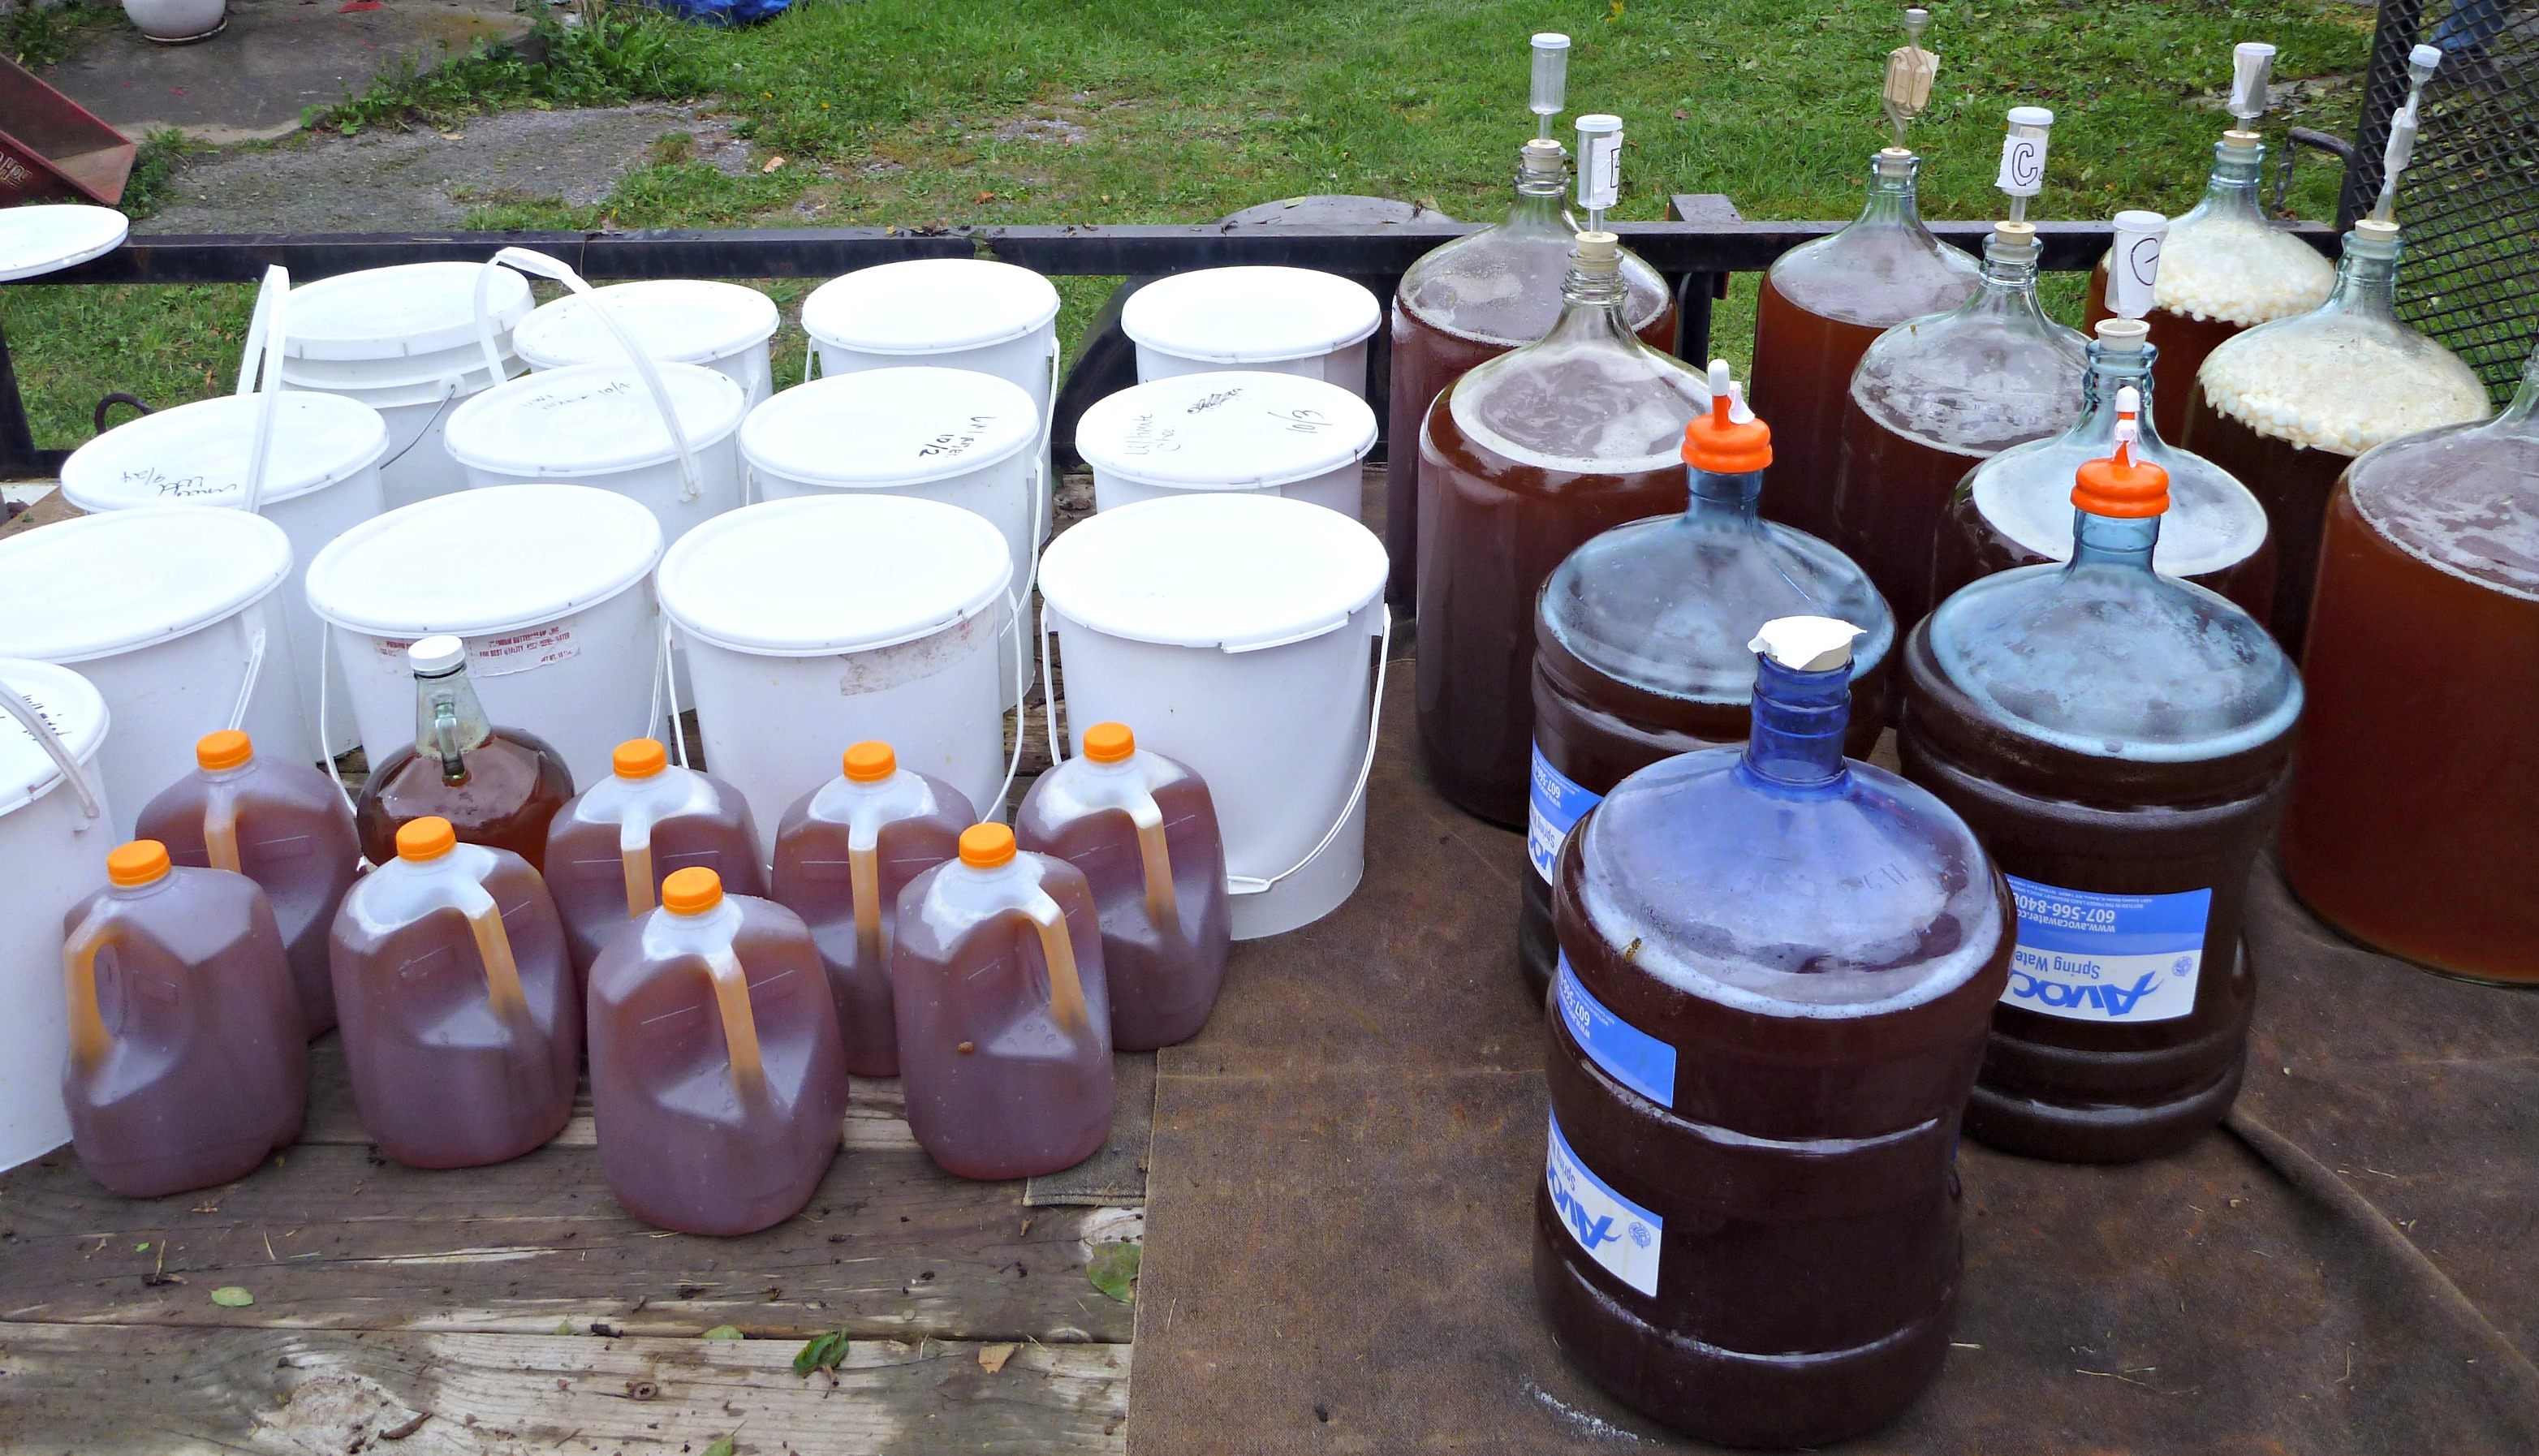 Now the fun part: MAKING APPLE JUICE INTO HARD CIDER